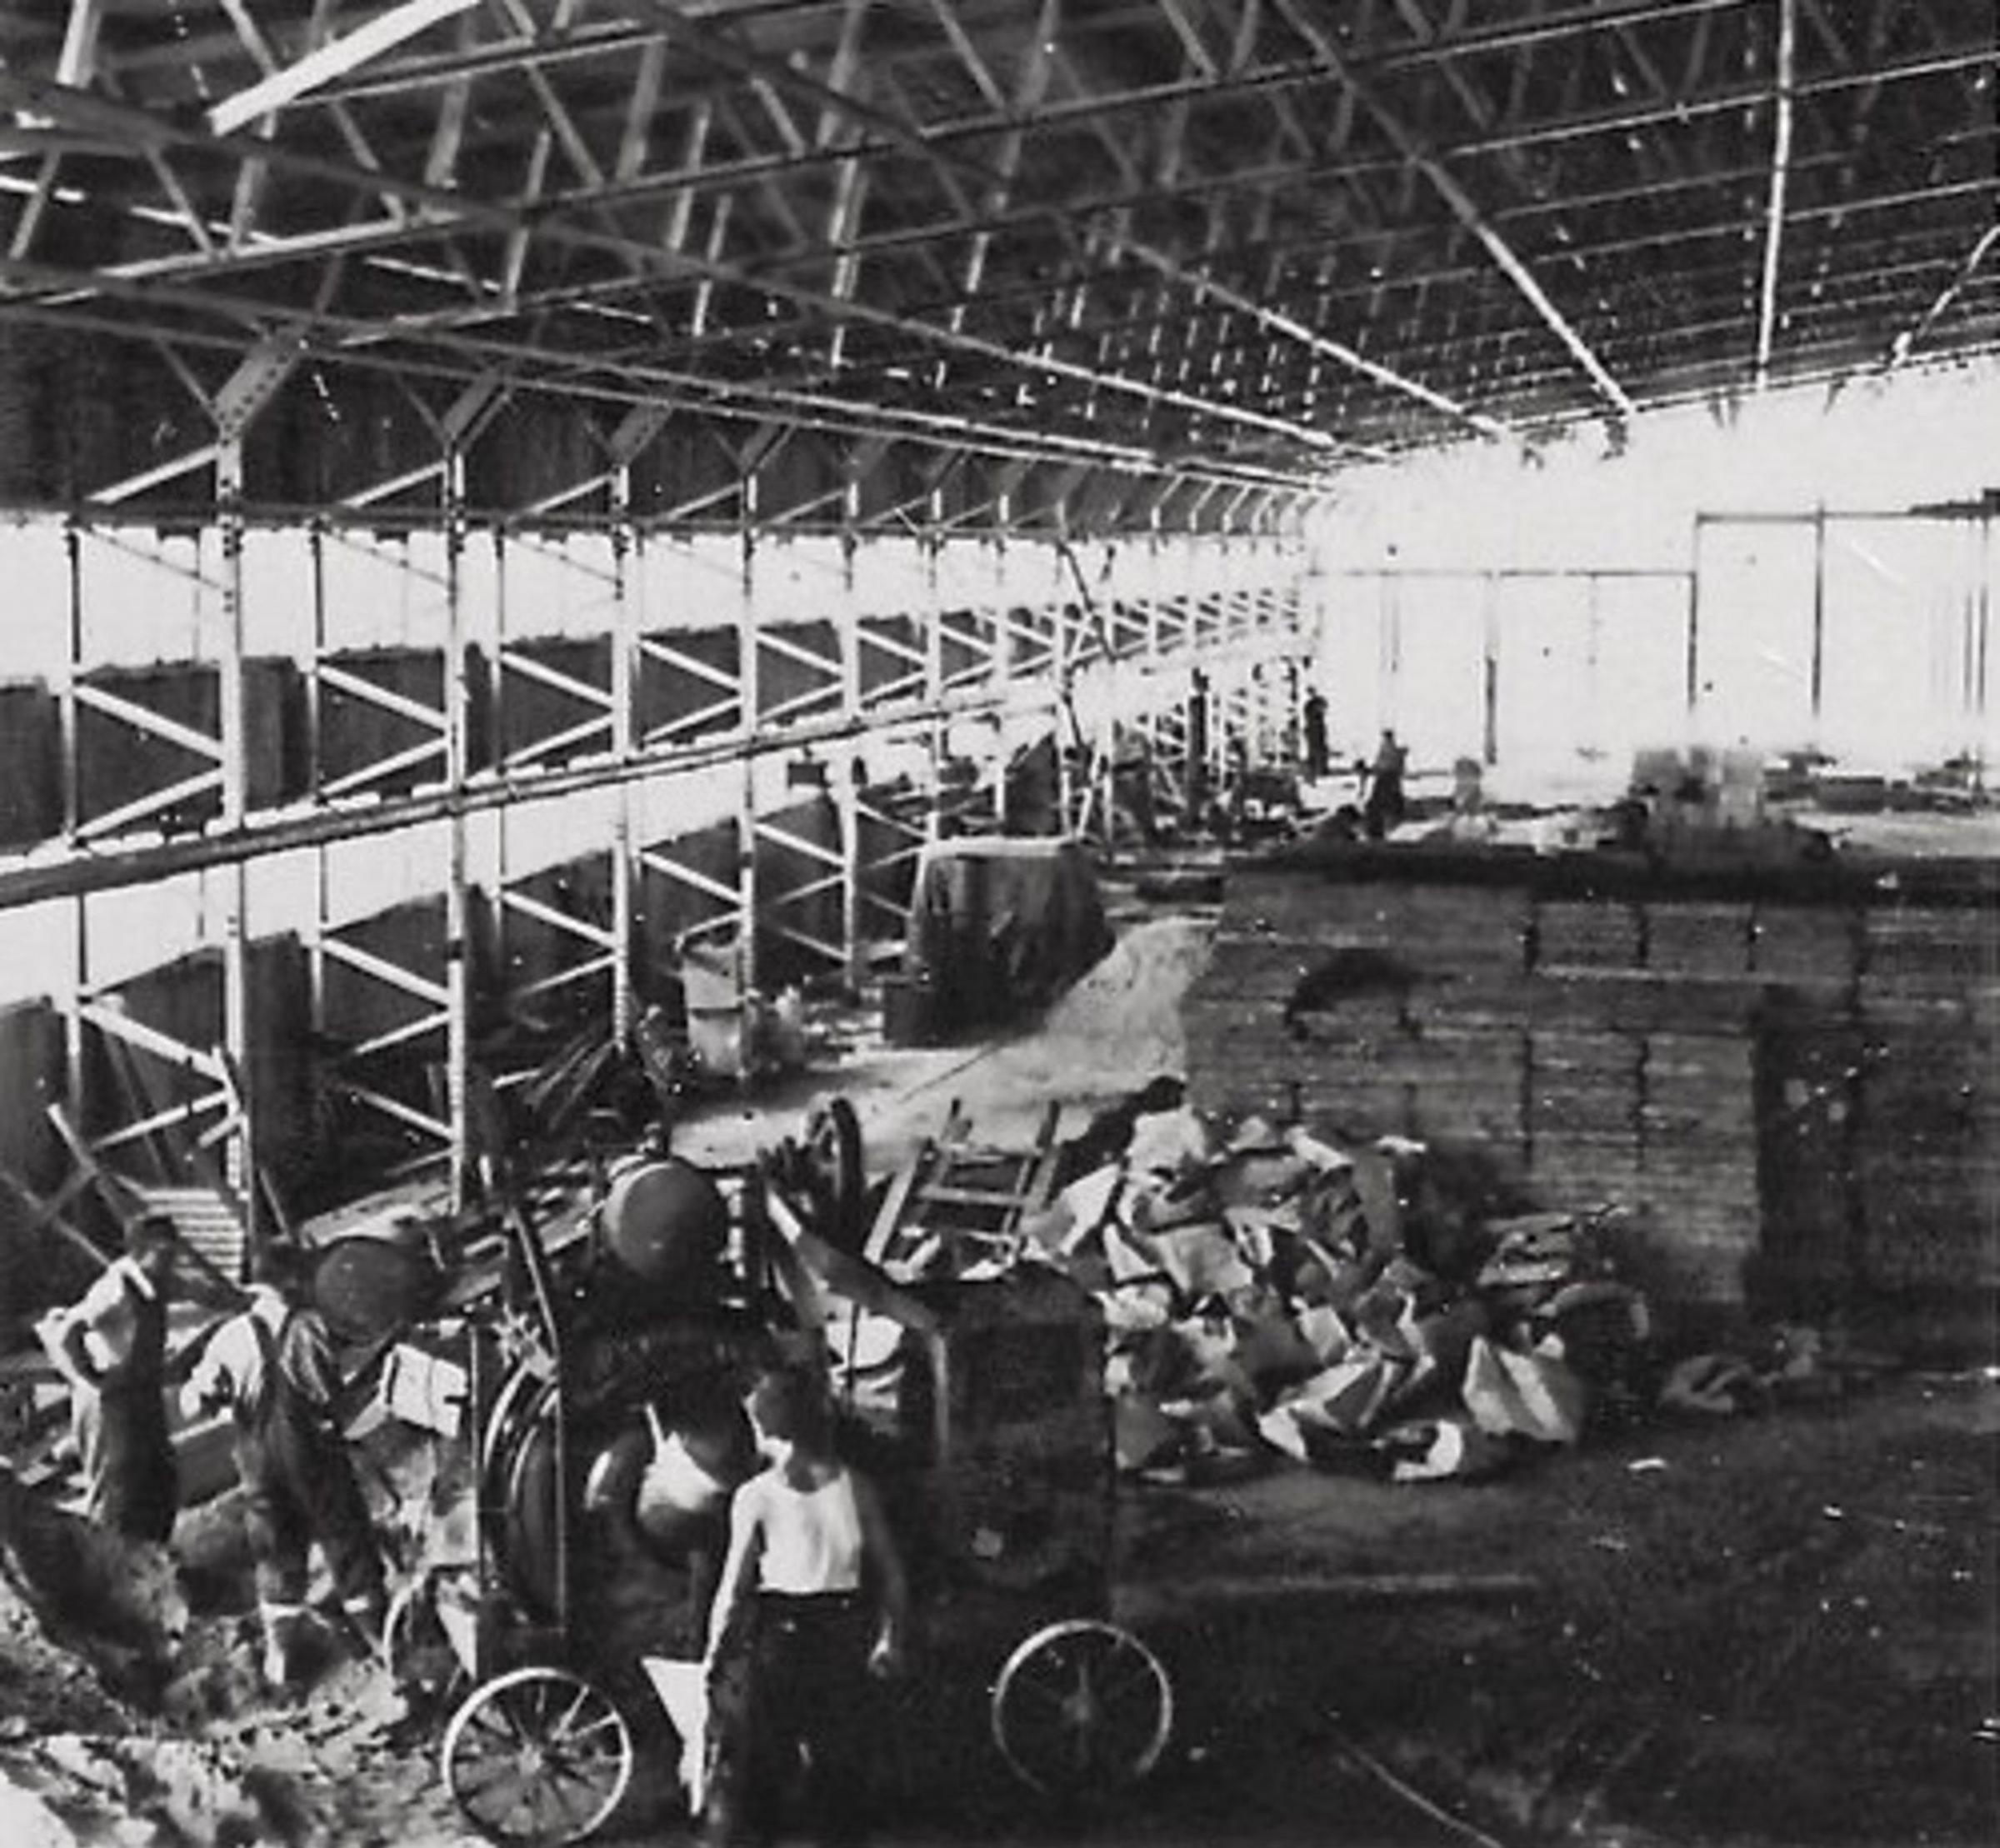 Construction of a hangar at RNAS Culdrose